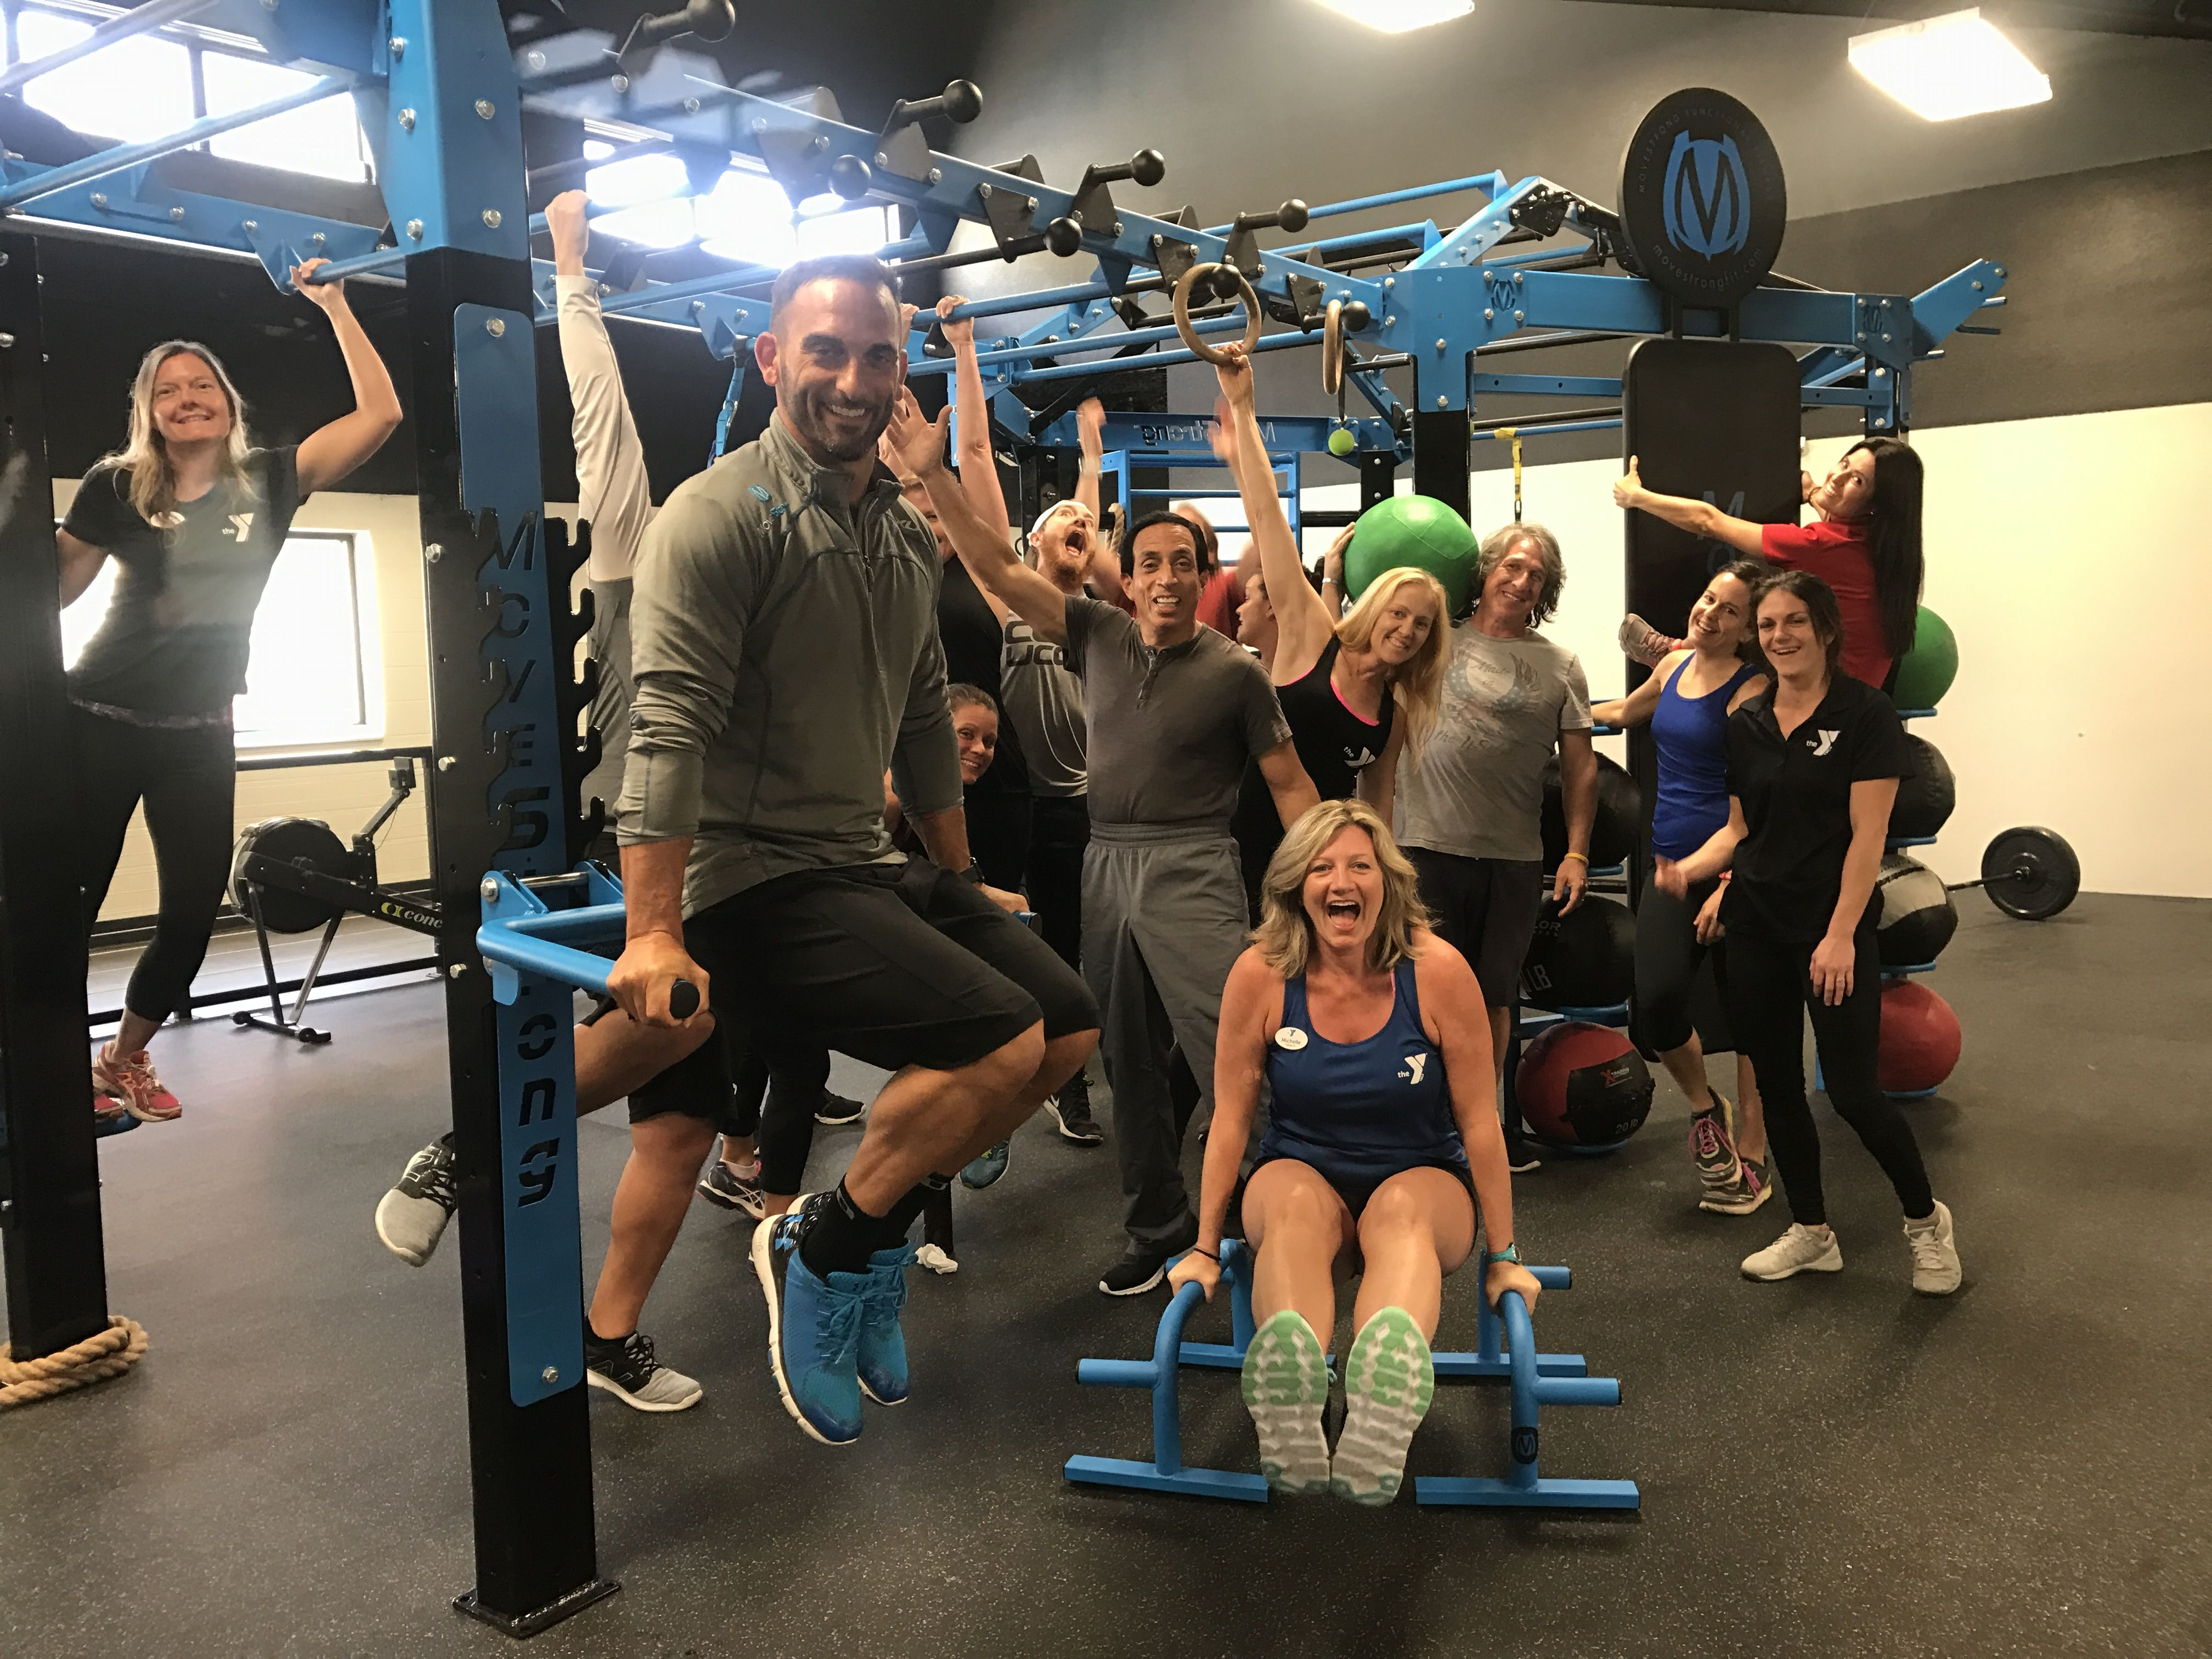 Tampa Area Ymca Staff Training For Movestrong Functional Fitness To Launch New Training Amenity For Members Staff Training Ymca Golds Gym